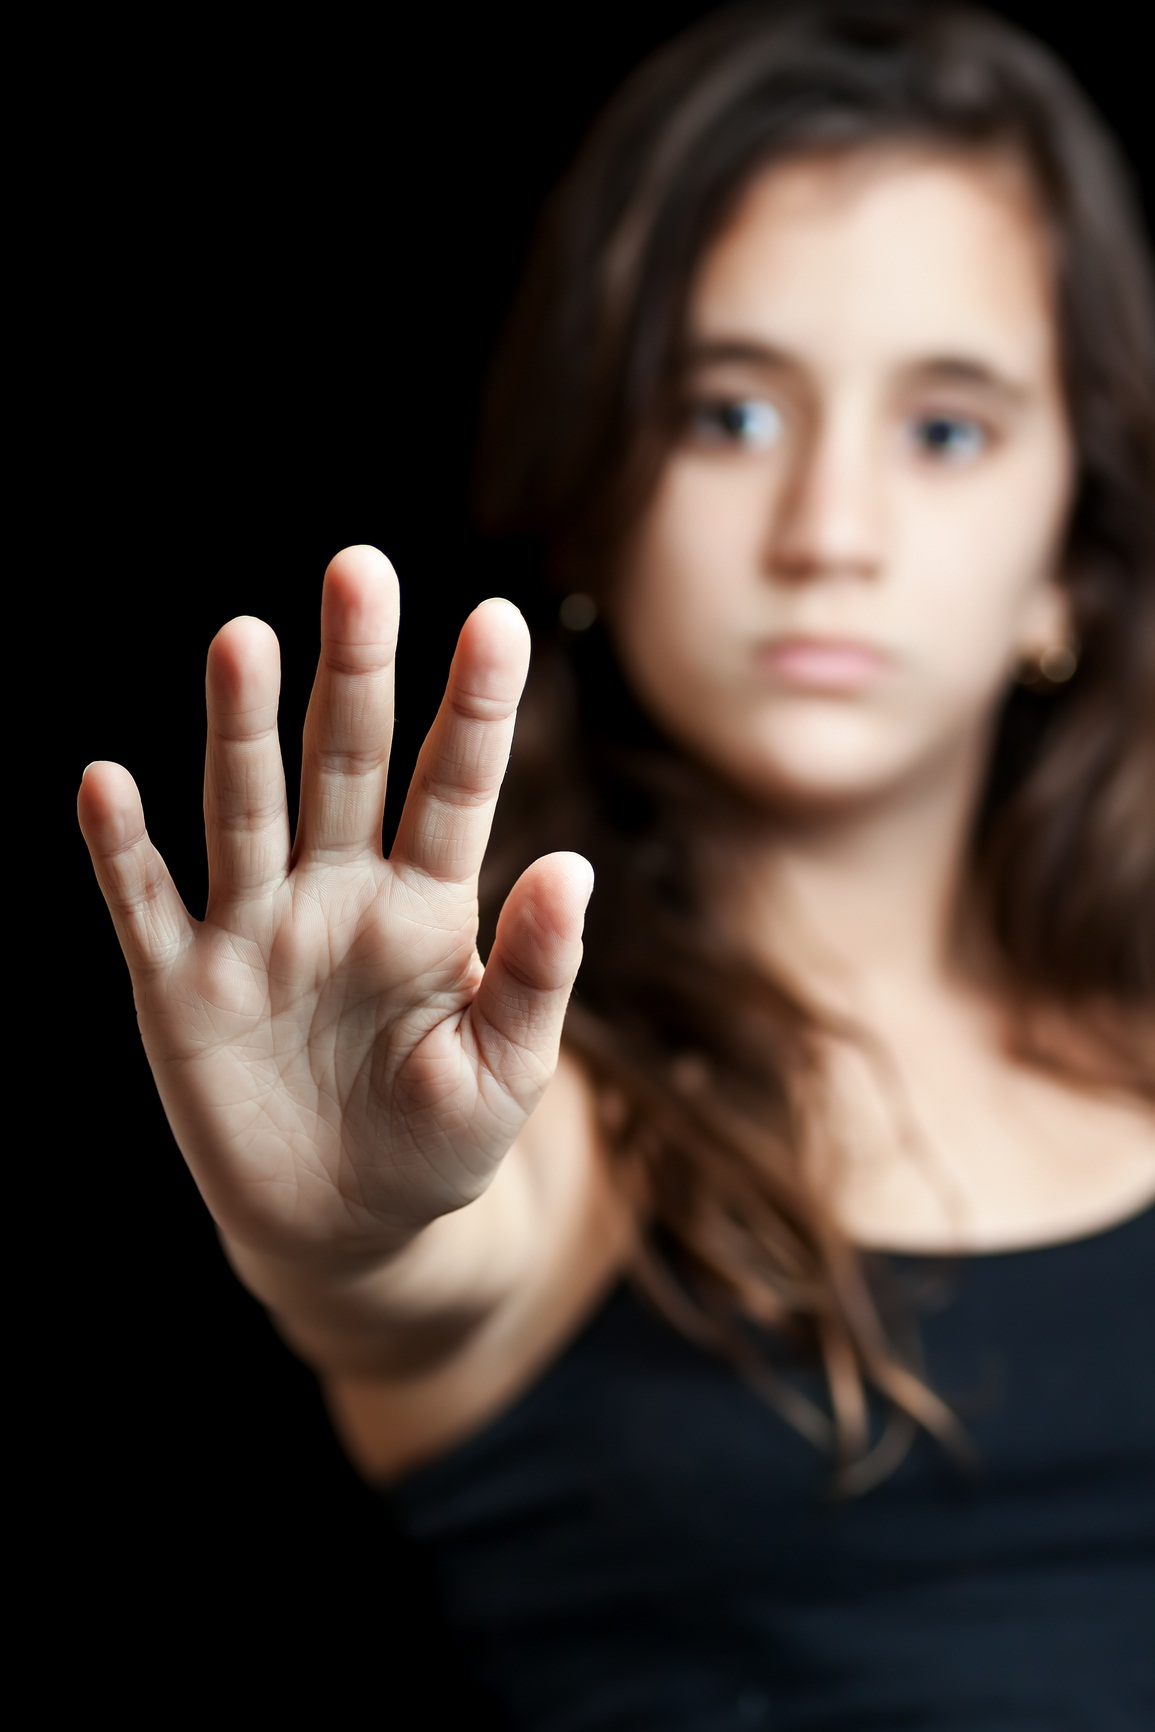 Hispanic girl with her hand extended signaling to stop useful to campaign against violence, gender or sexual discrimination (Focused on her hand)